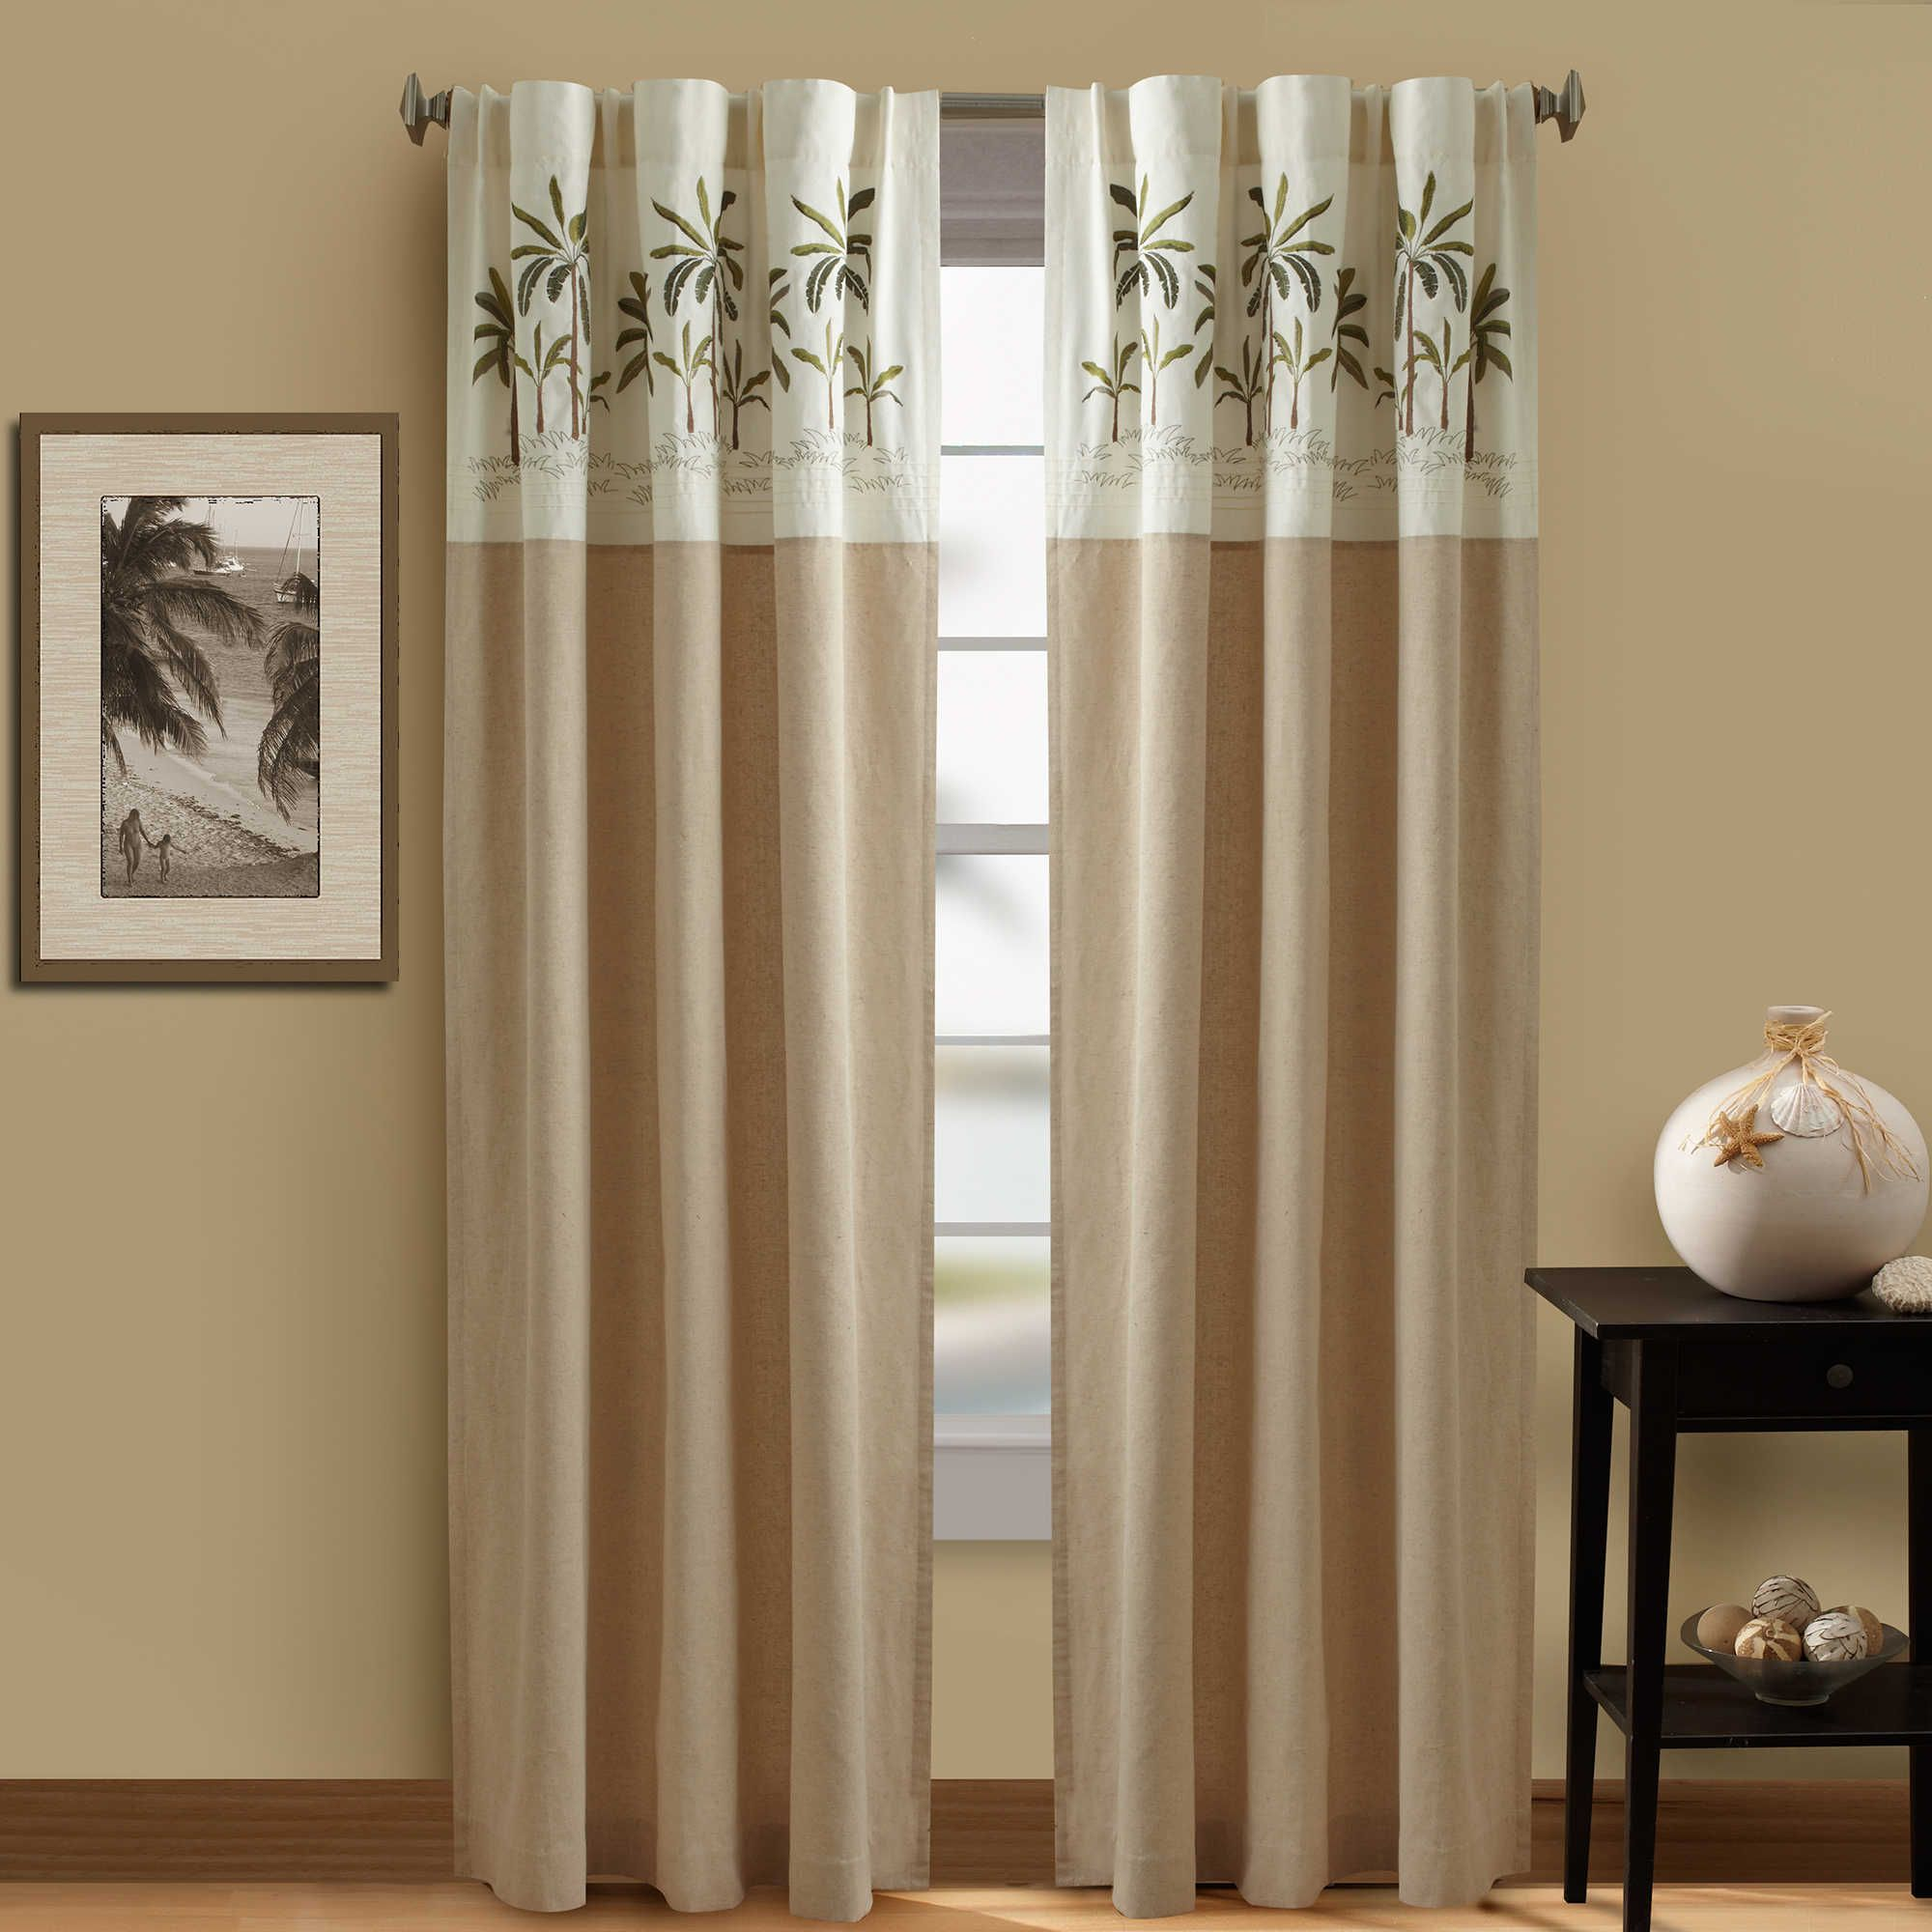 Bed bath and beyond window curtains  croscill palm tree lined rod pocketback tab window panel in ivory